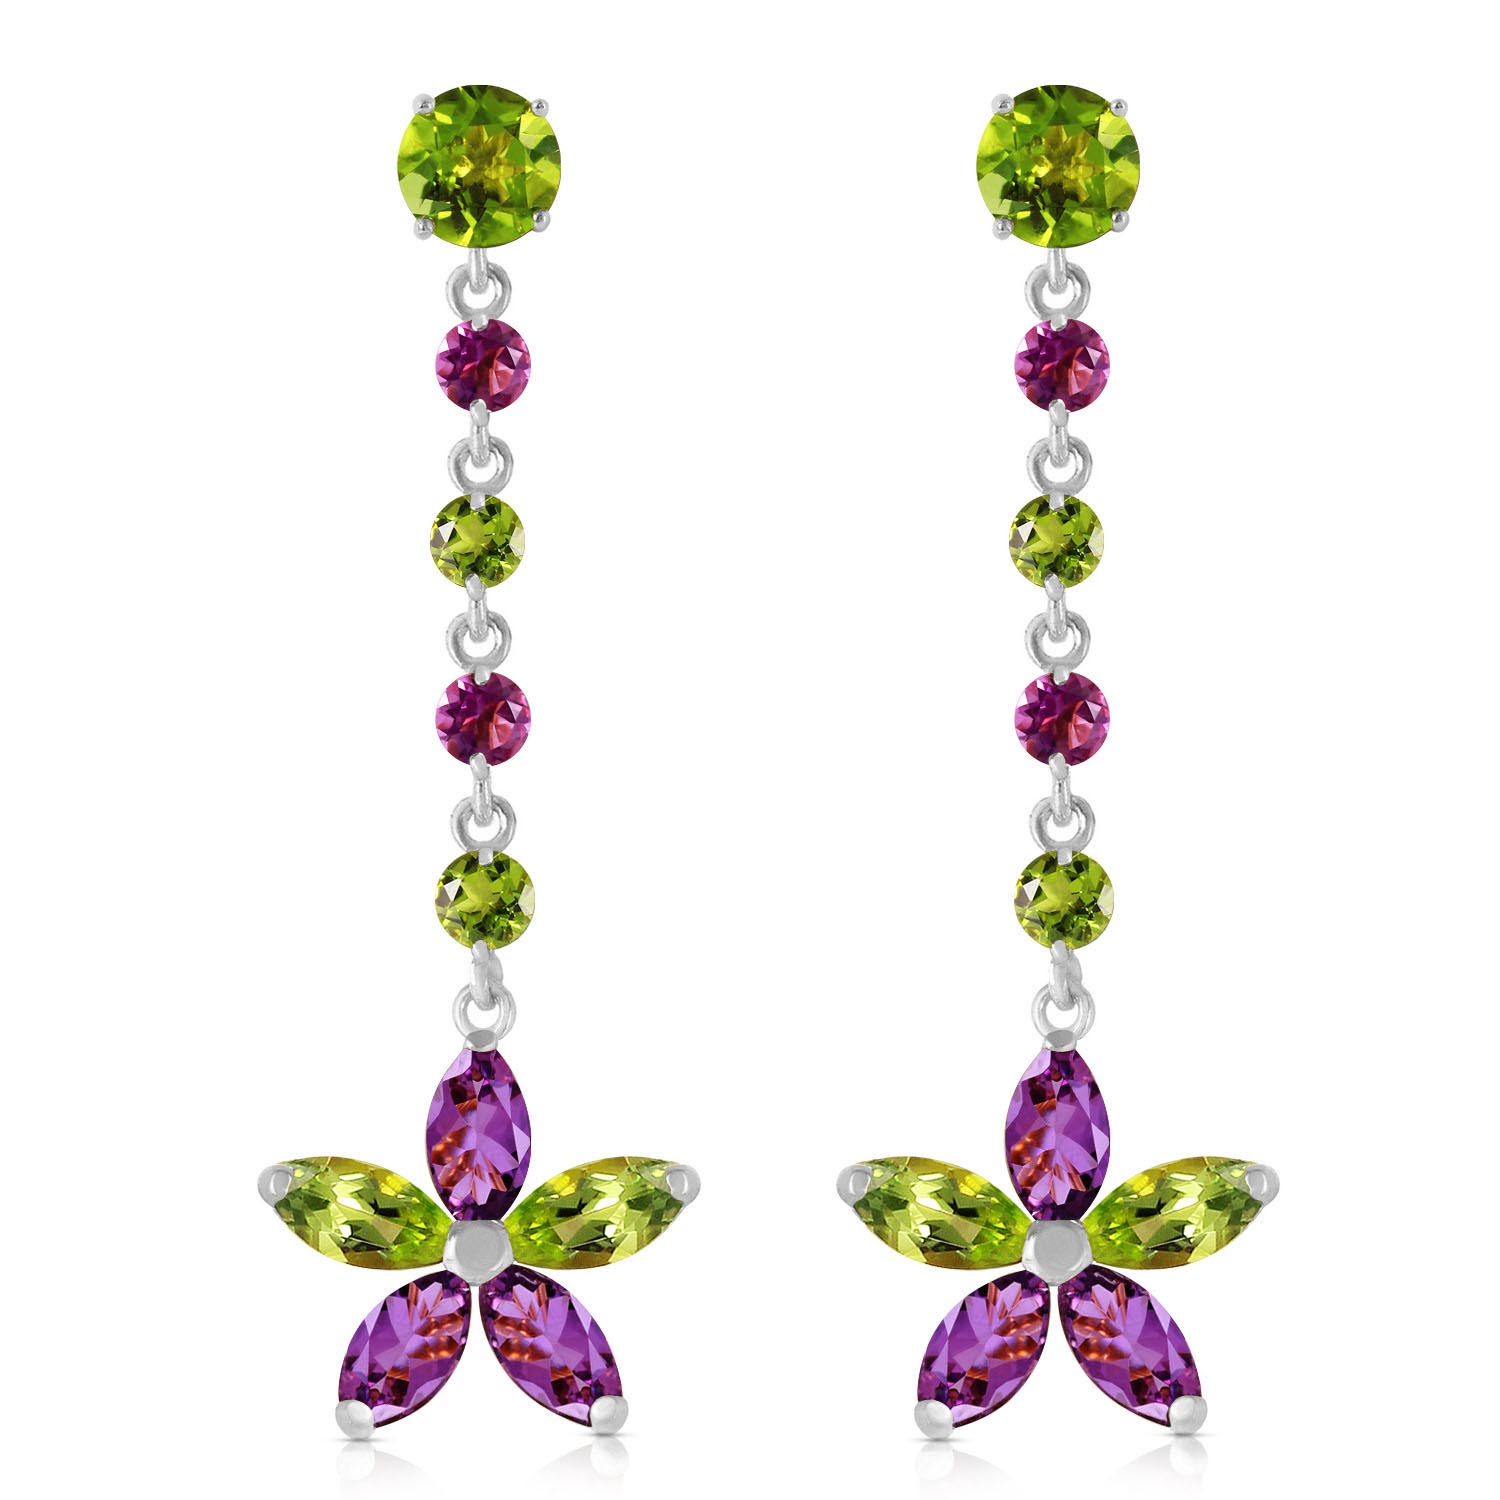 Peridot and Amethyst Daisy Chain Drop Earrings 4.8ctw in 9ct White Gold